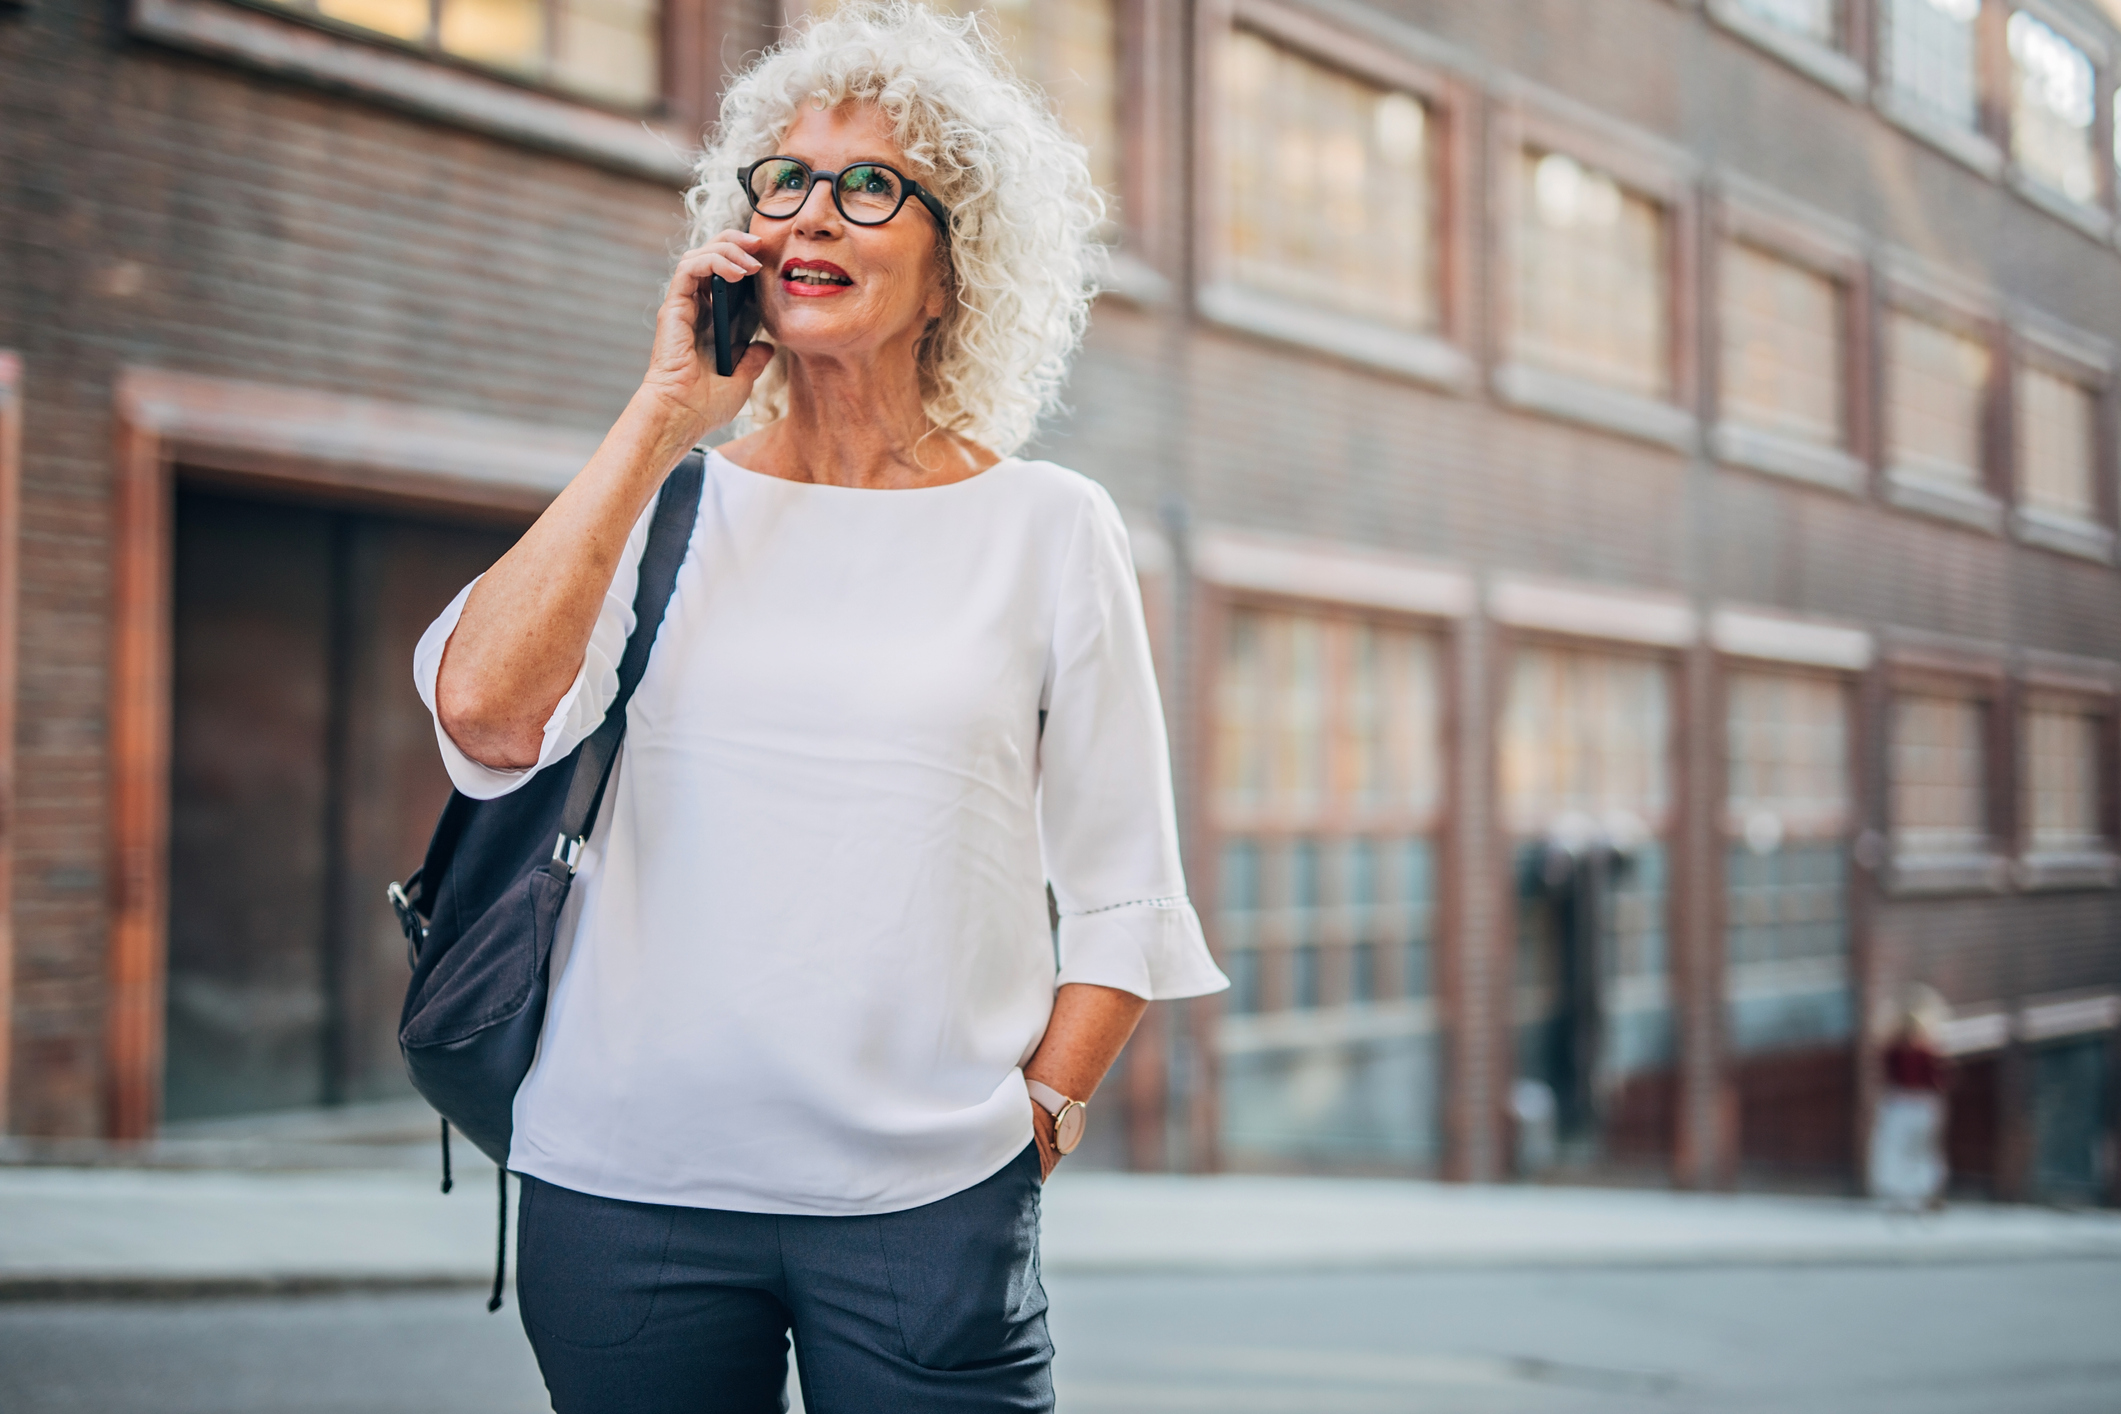 Lady talking on mobile on the street